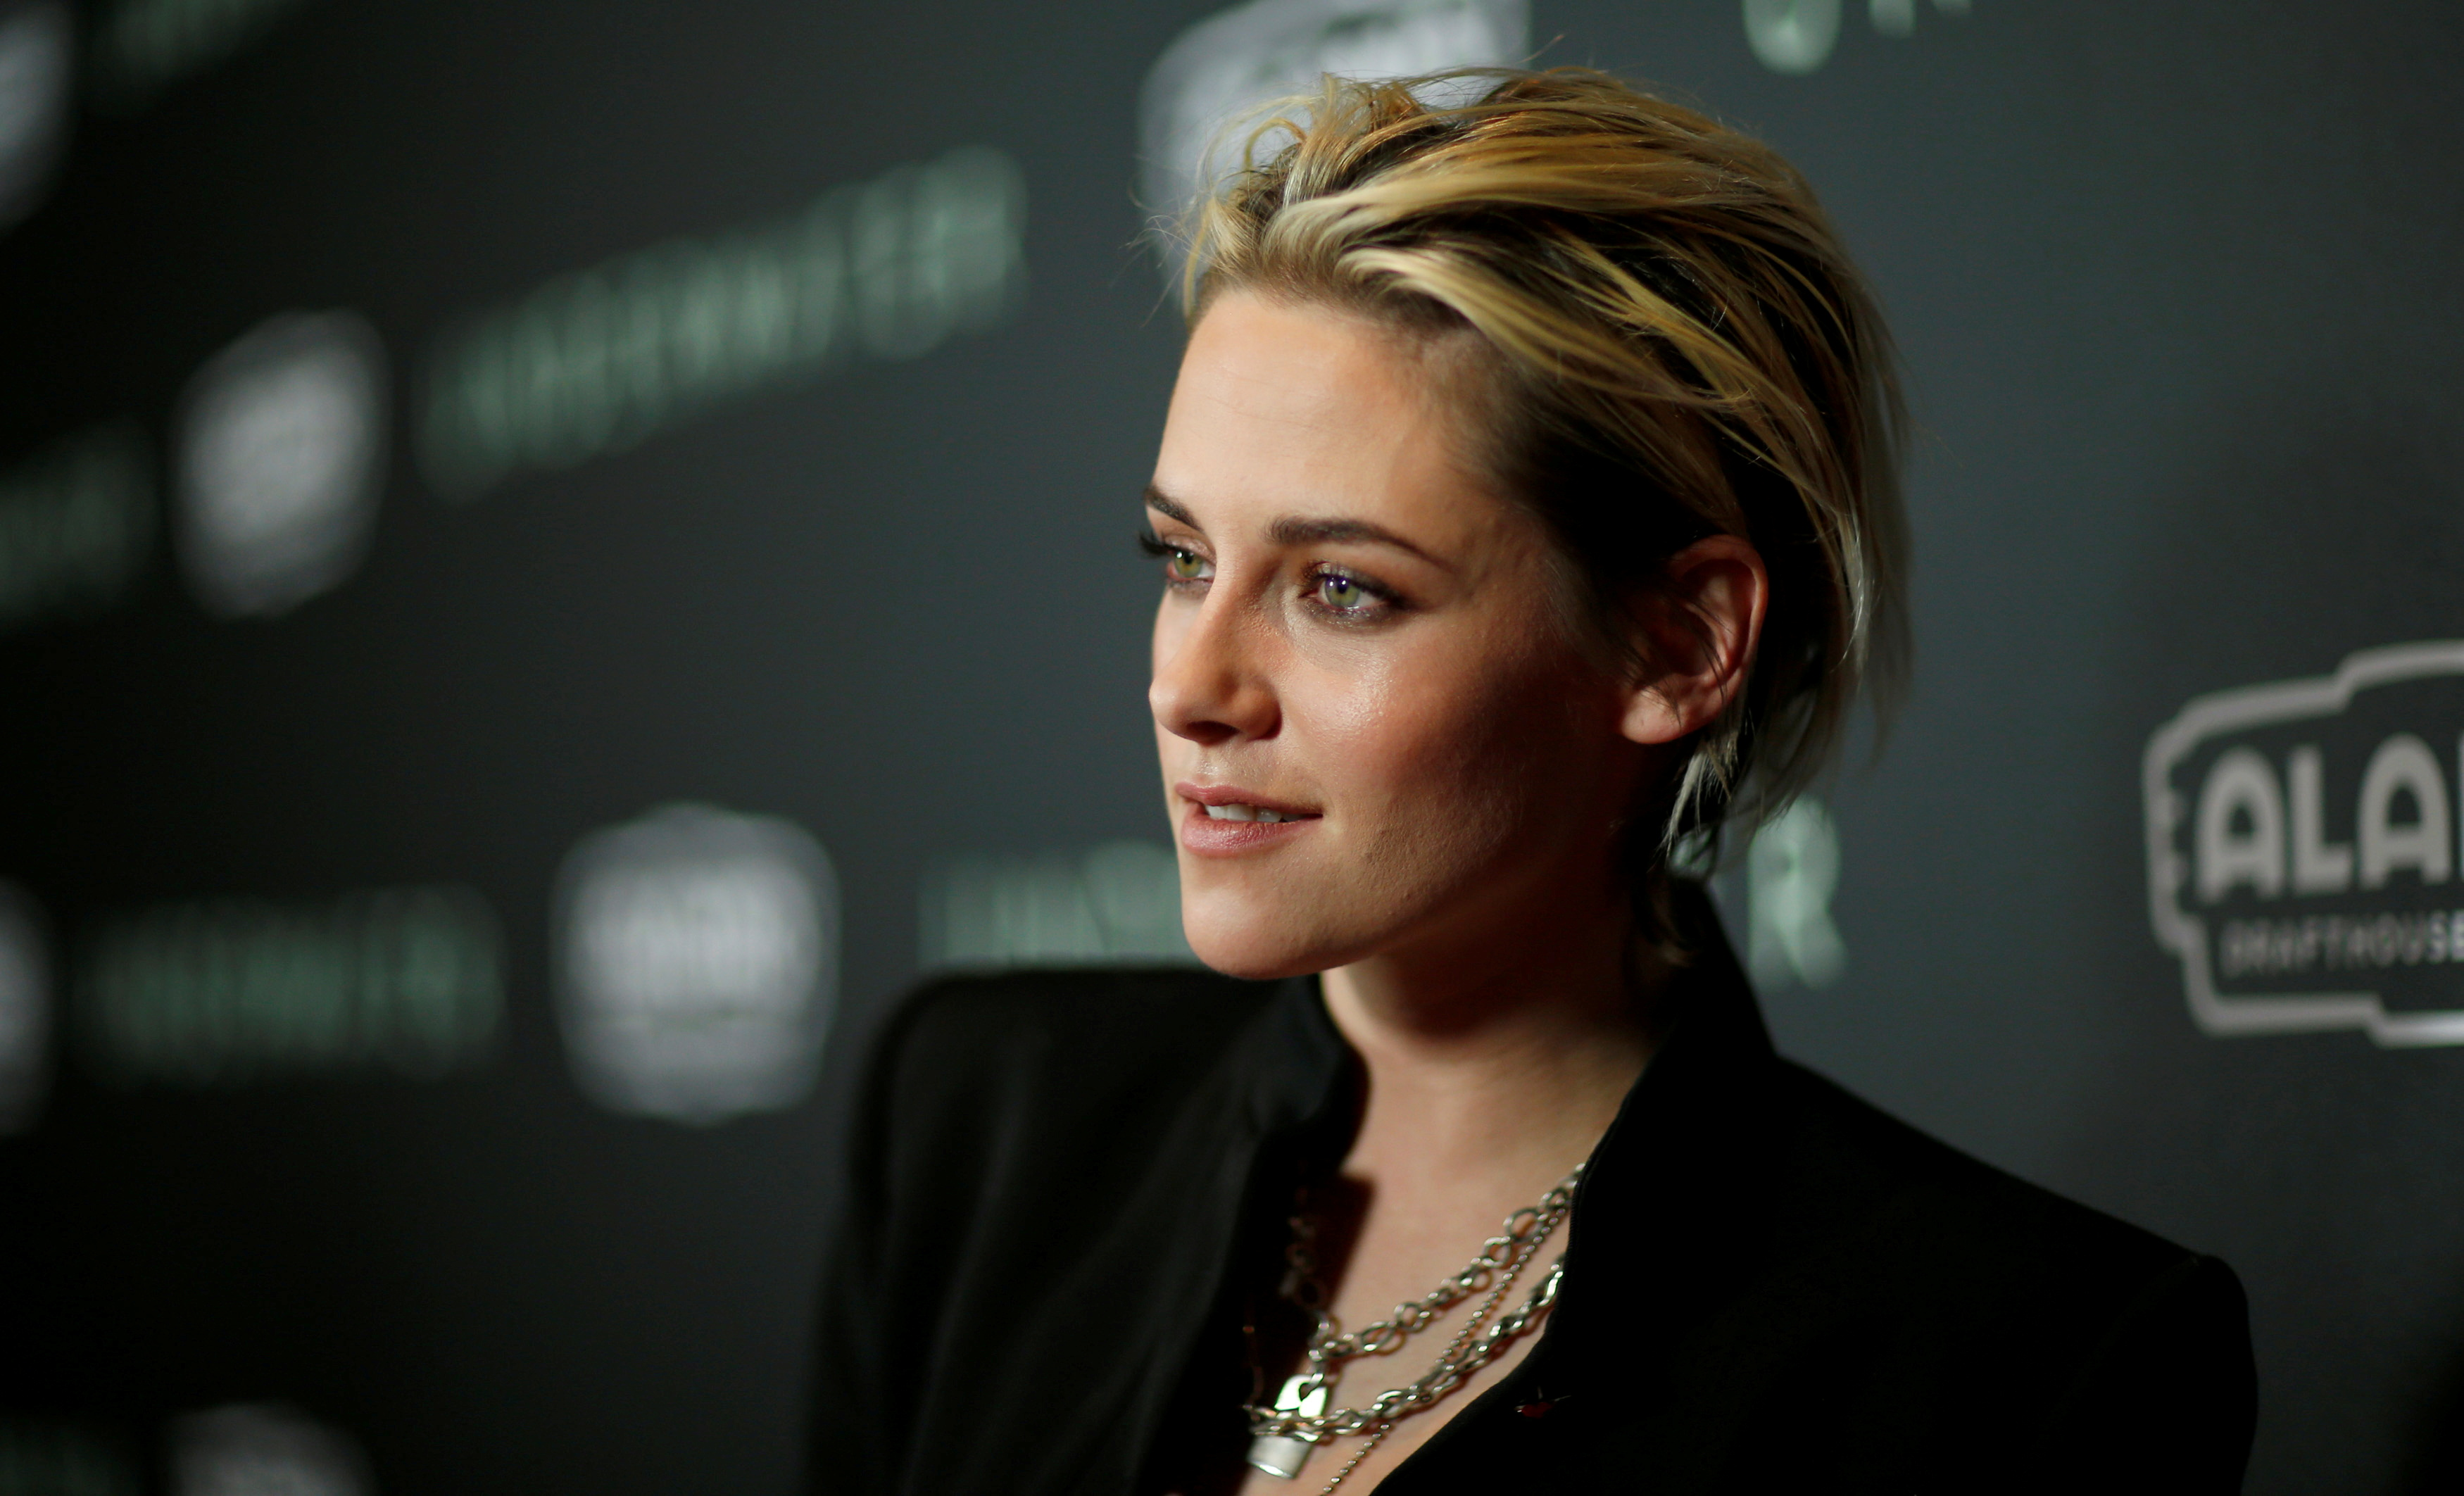 Cast member Kristen Stewart poses at a screening for the film